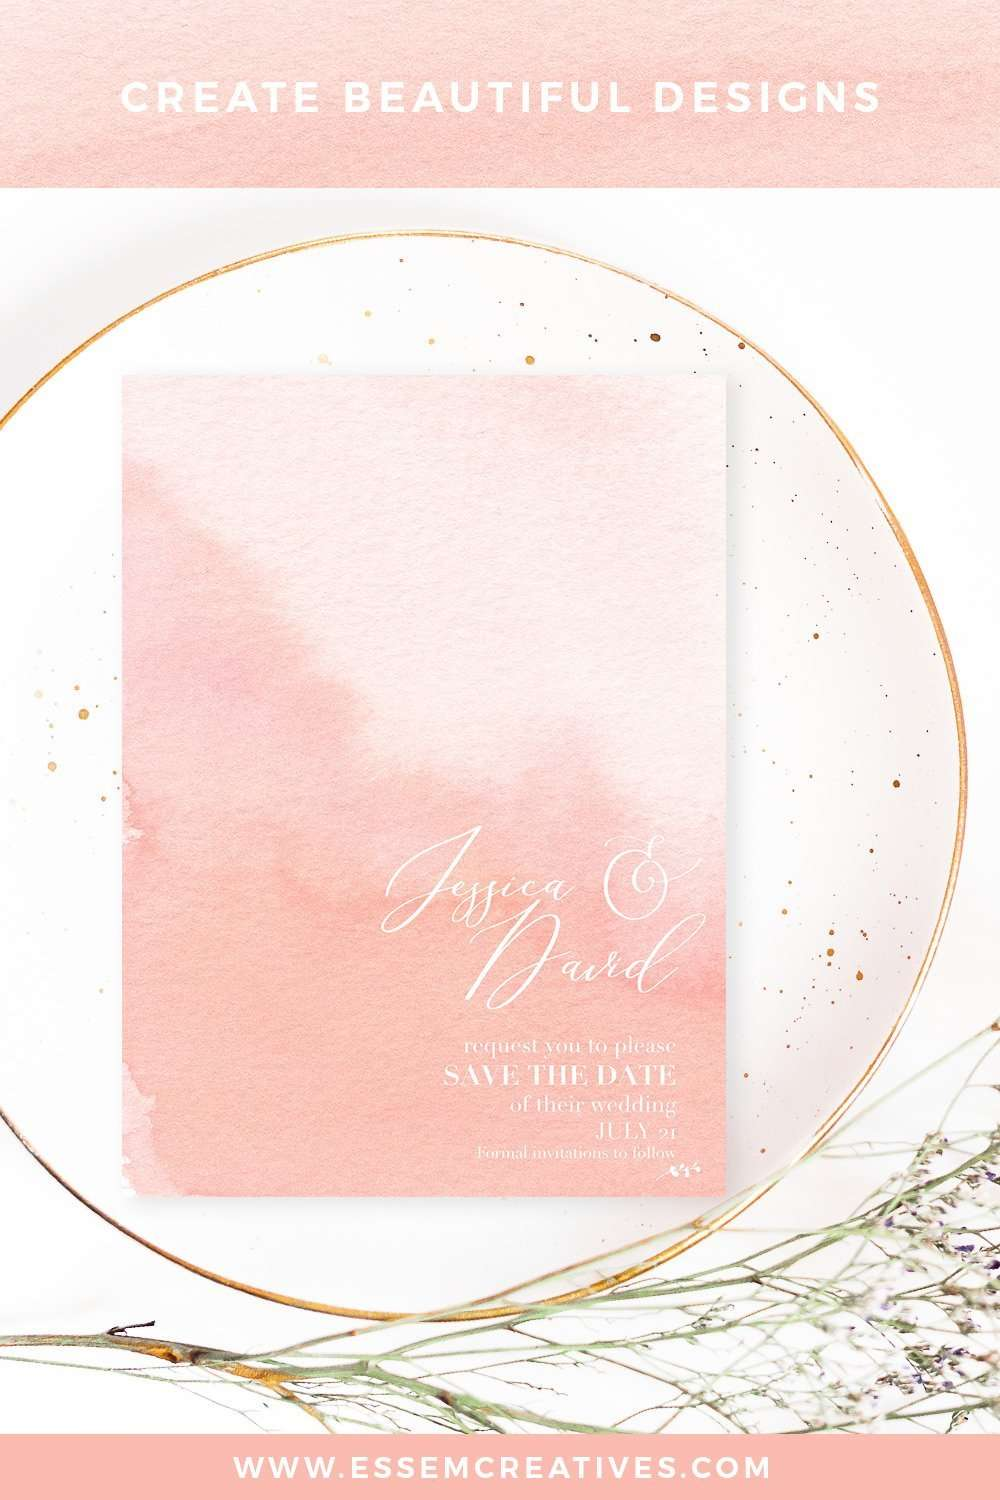 Blush Watercolor Ombres Background For Wedding Invitations Essem Creatives